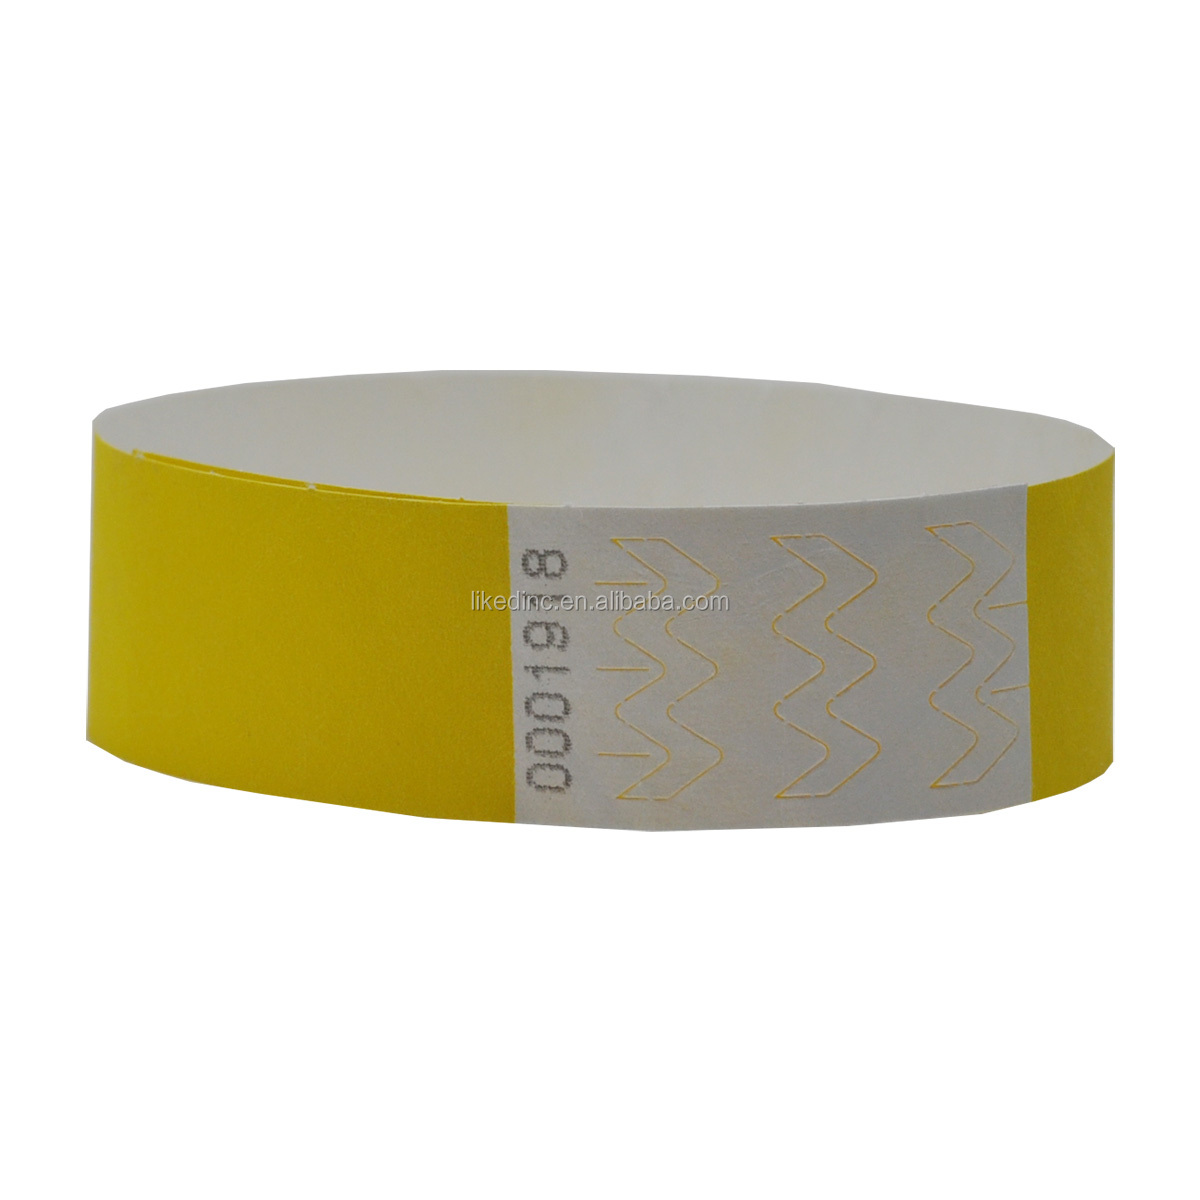 Original style one time use tyvek paper rfid wristband bracelet for ticket